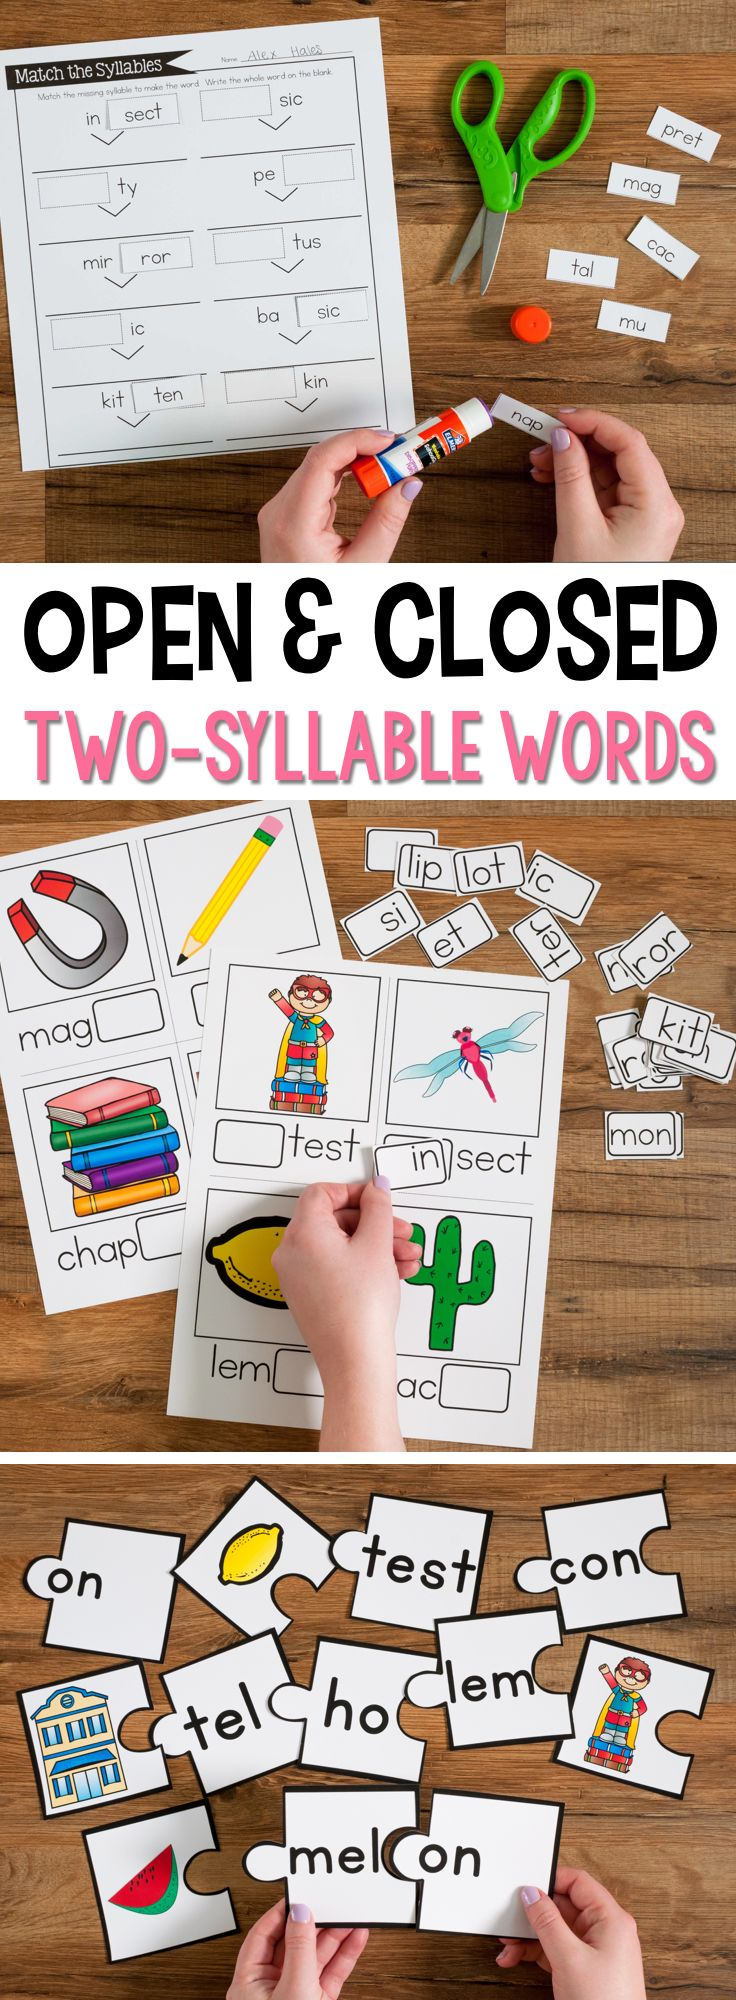 Syllable patterns vccv worksheet education com - Open And Closed Syllable Practice For Two Syllable Words Has Over 12 Different Activities And